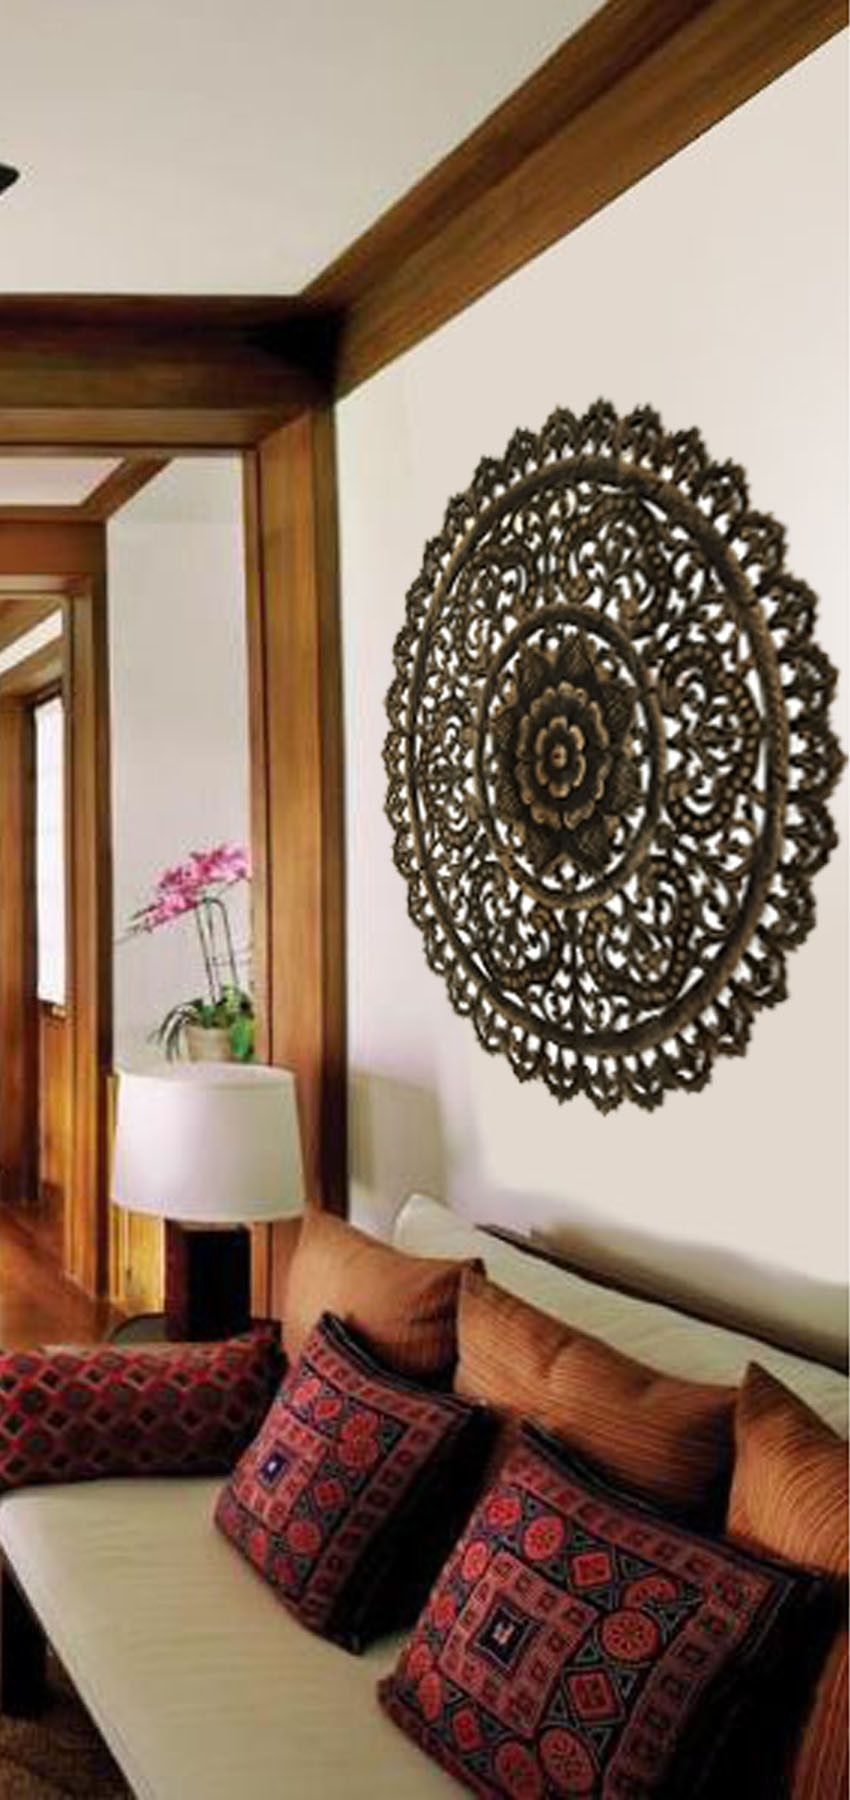 Elegant Medallion Wood Carved Wall Plaque. Large Round Wood Carving For Most Recent Round Wood Wall Art (Gallery 8 of 15)